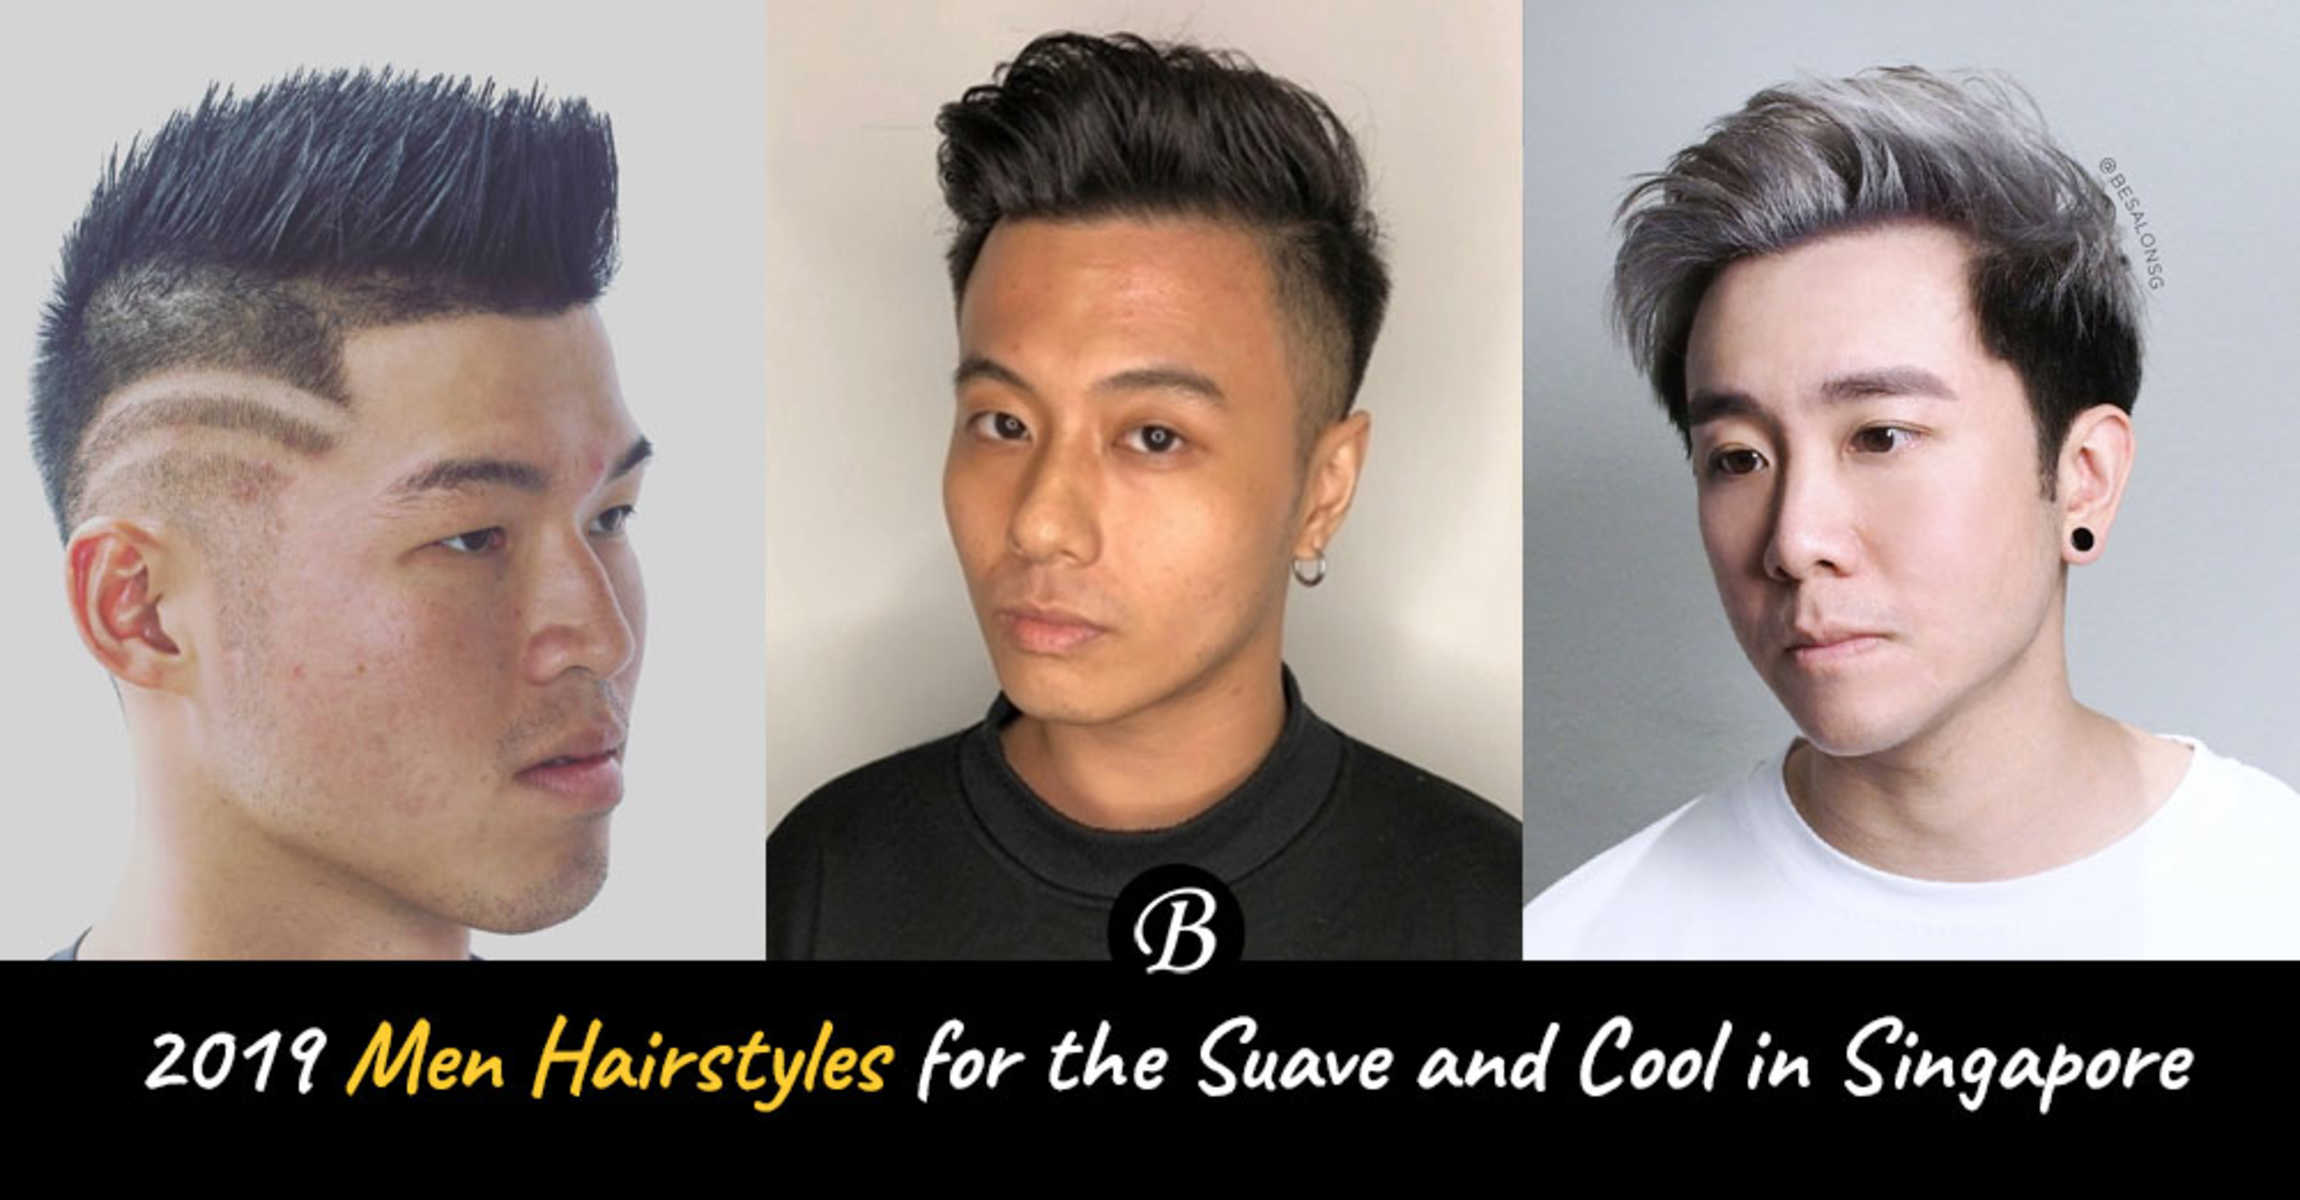 To find the right hairstyles for your face shape, it's important to know your shape in the first p. 2019 Trending Men S Hairstyles For The Suave And Cool In Singapore